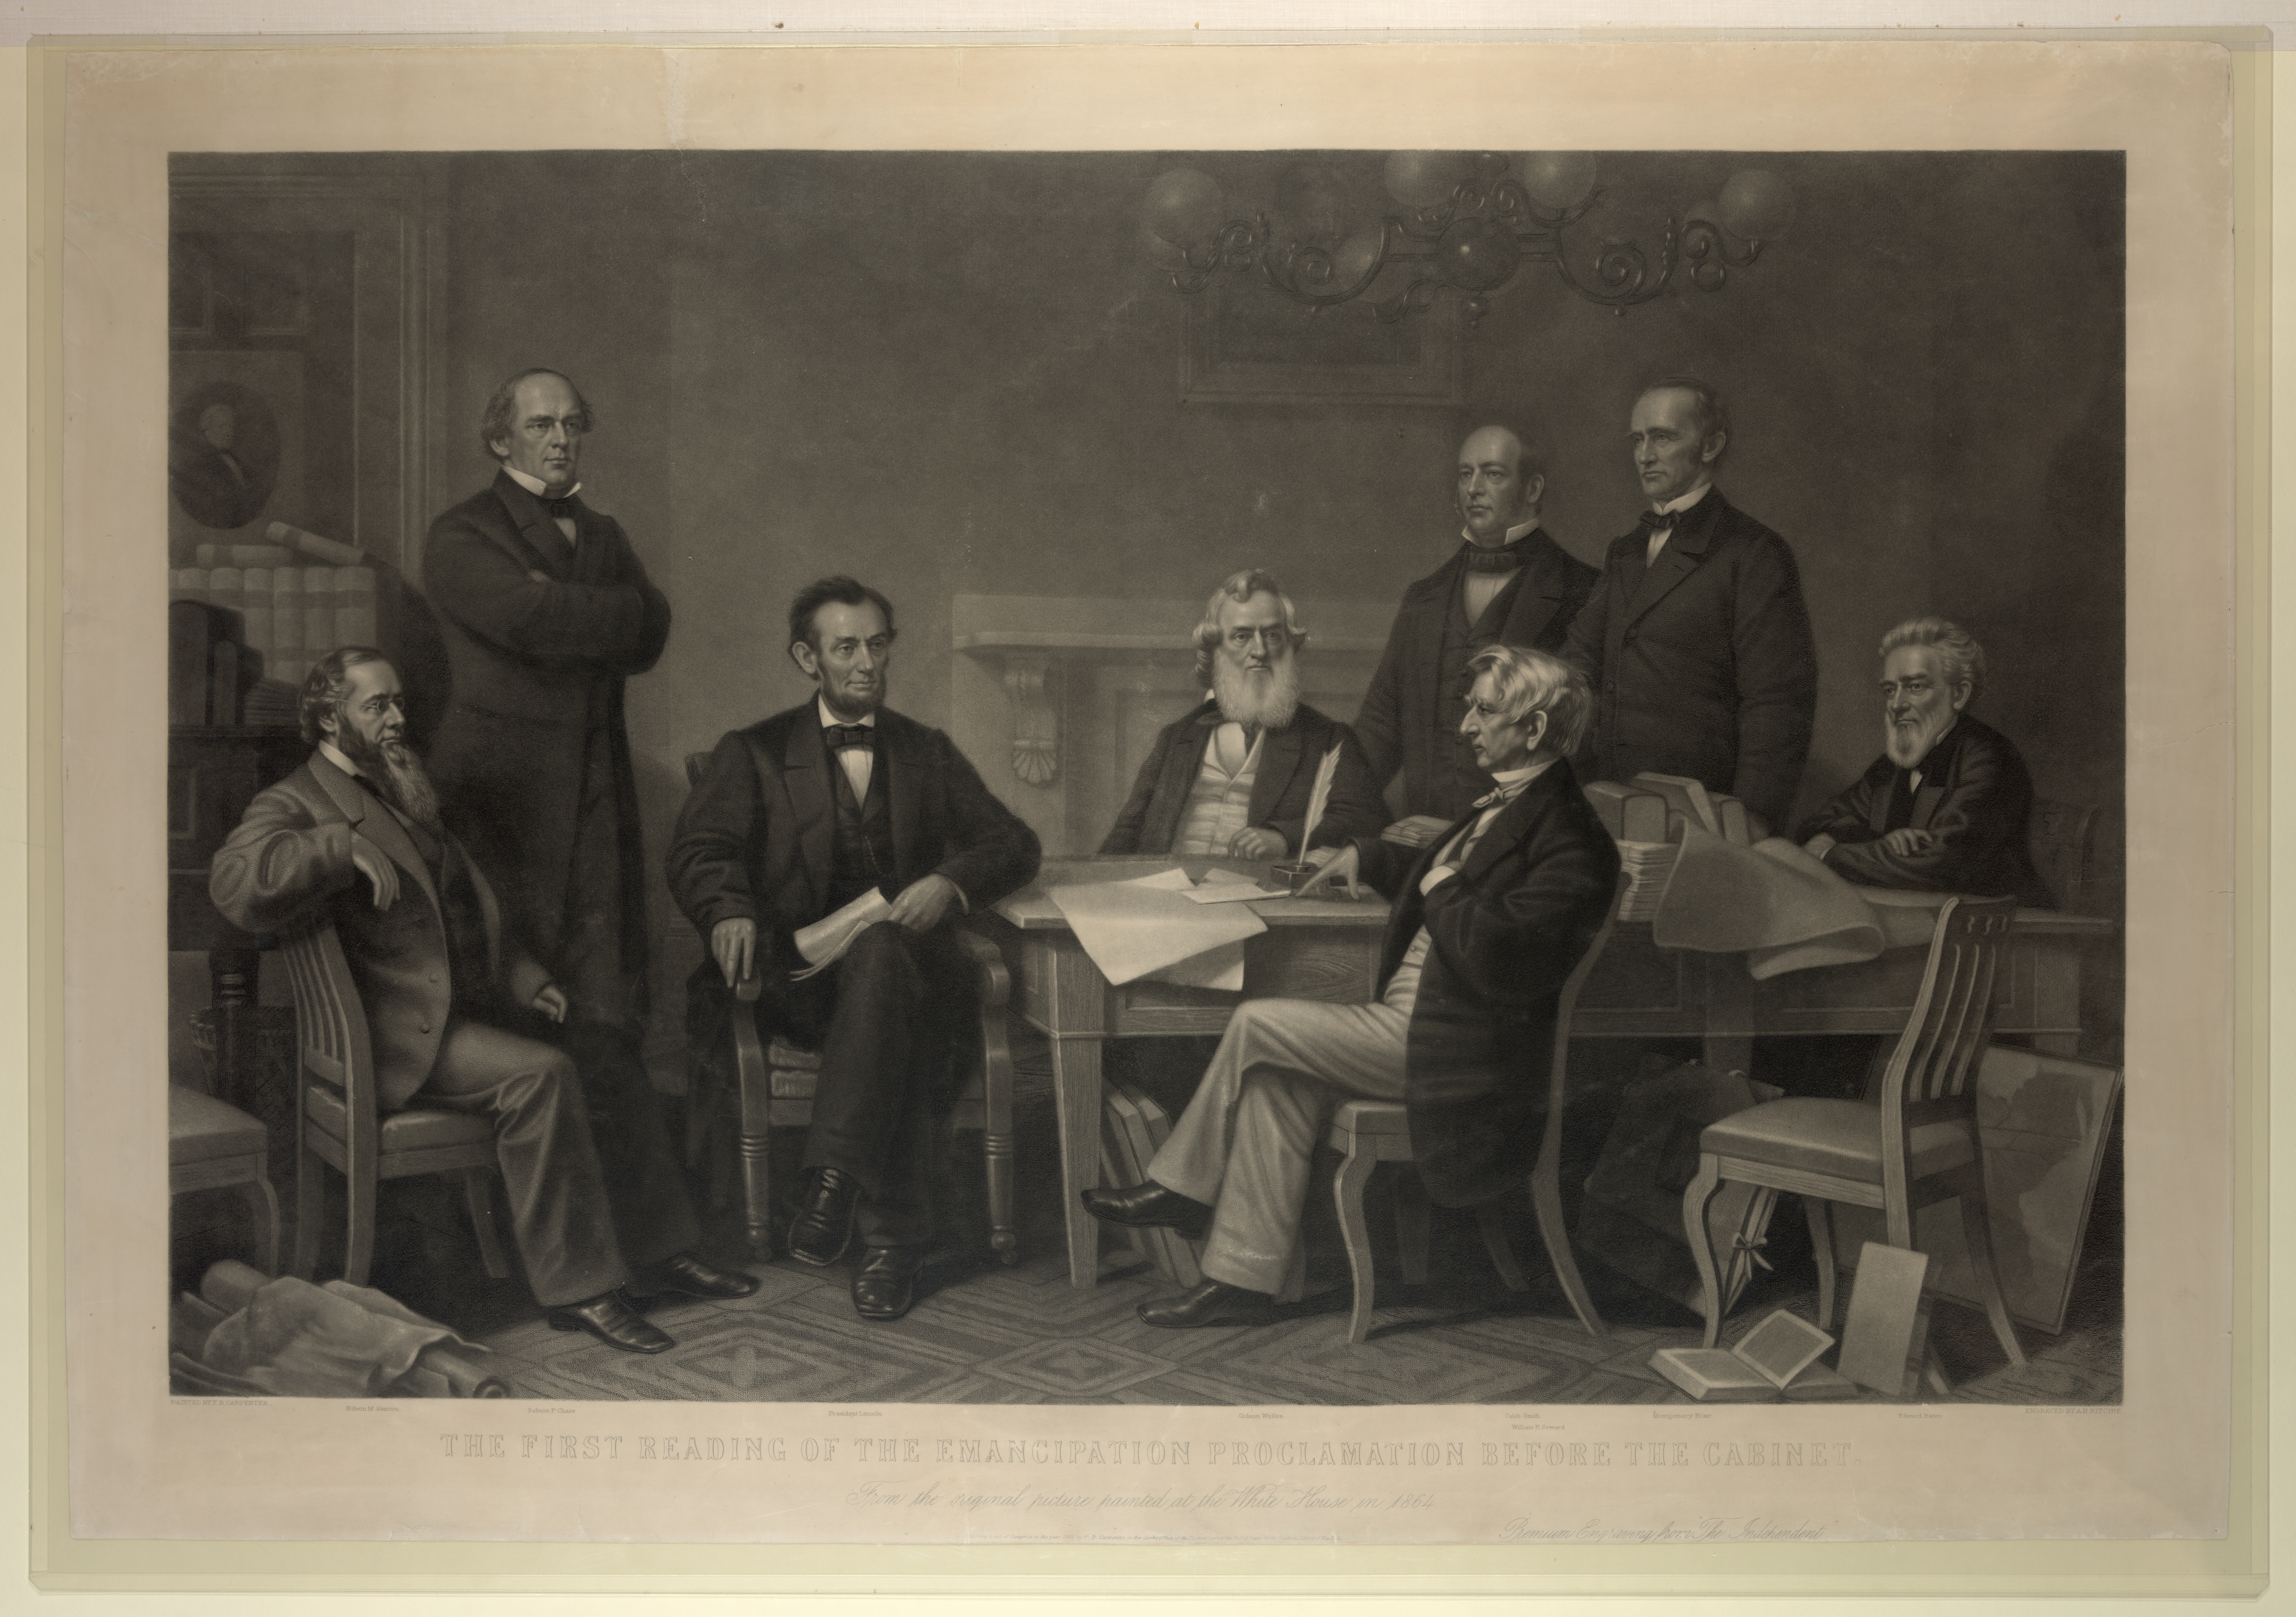 Abraham Linclon and the signing of the Emancipation Proclamation